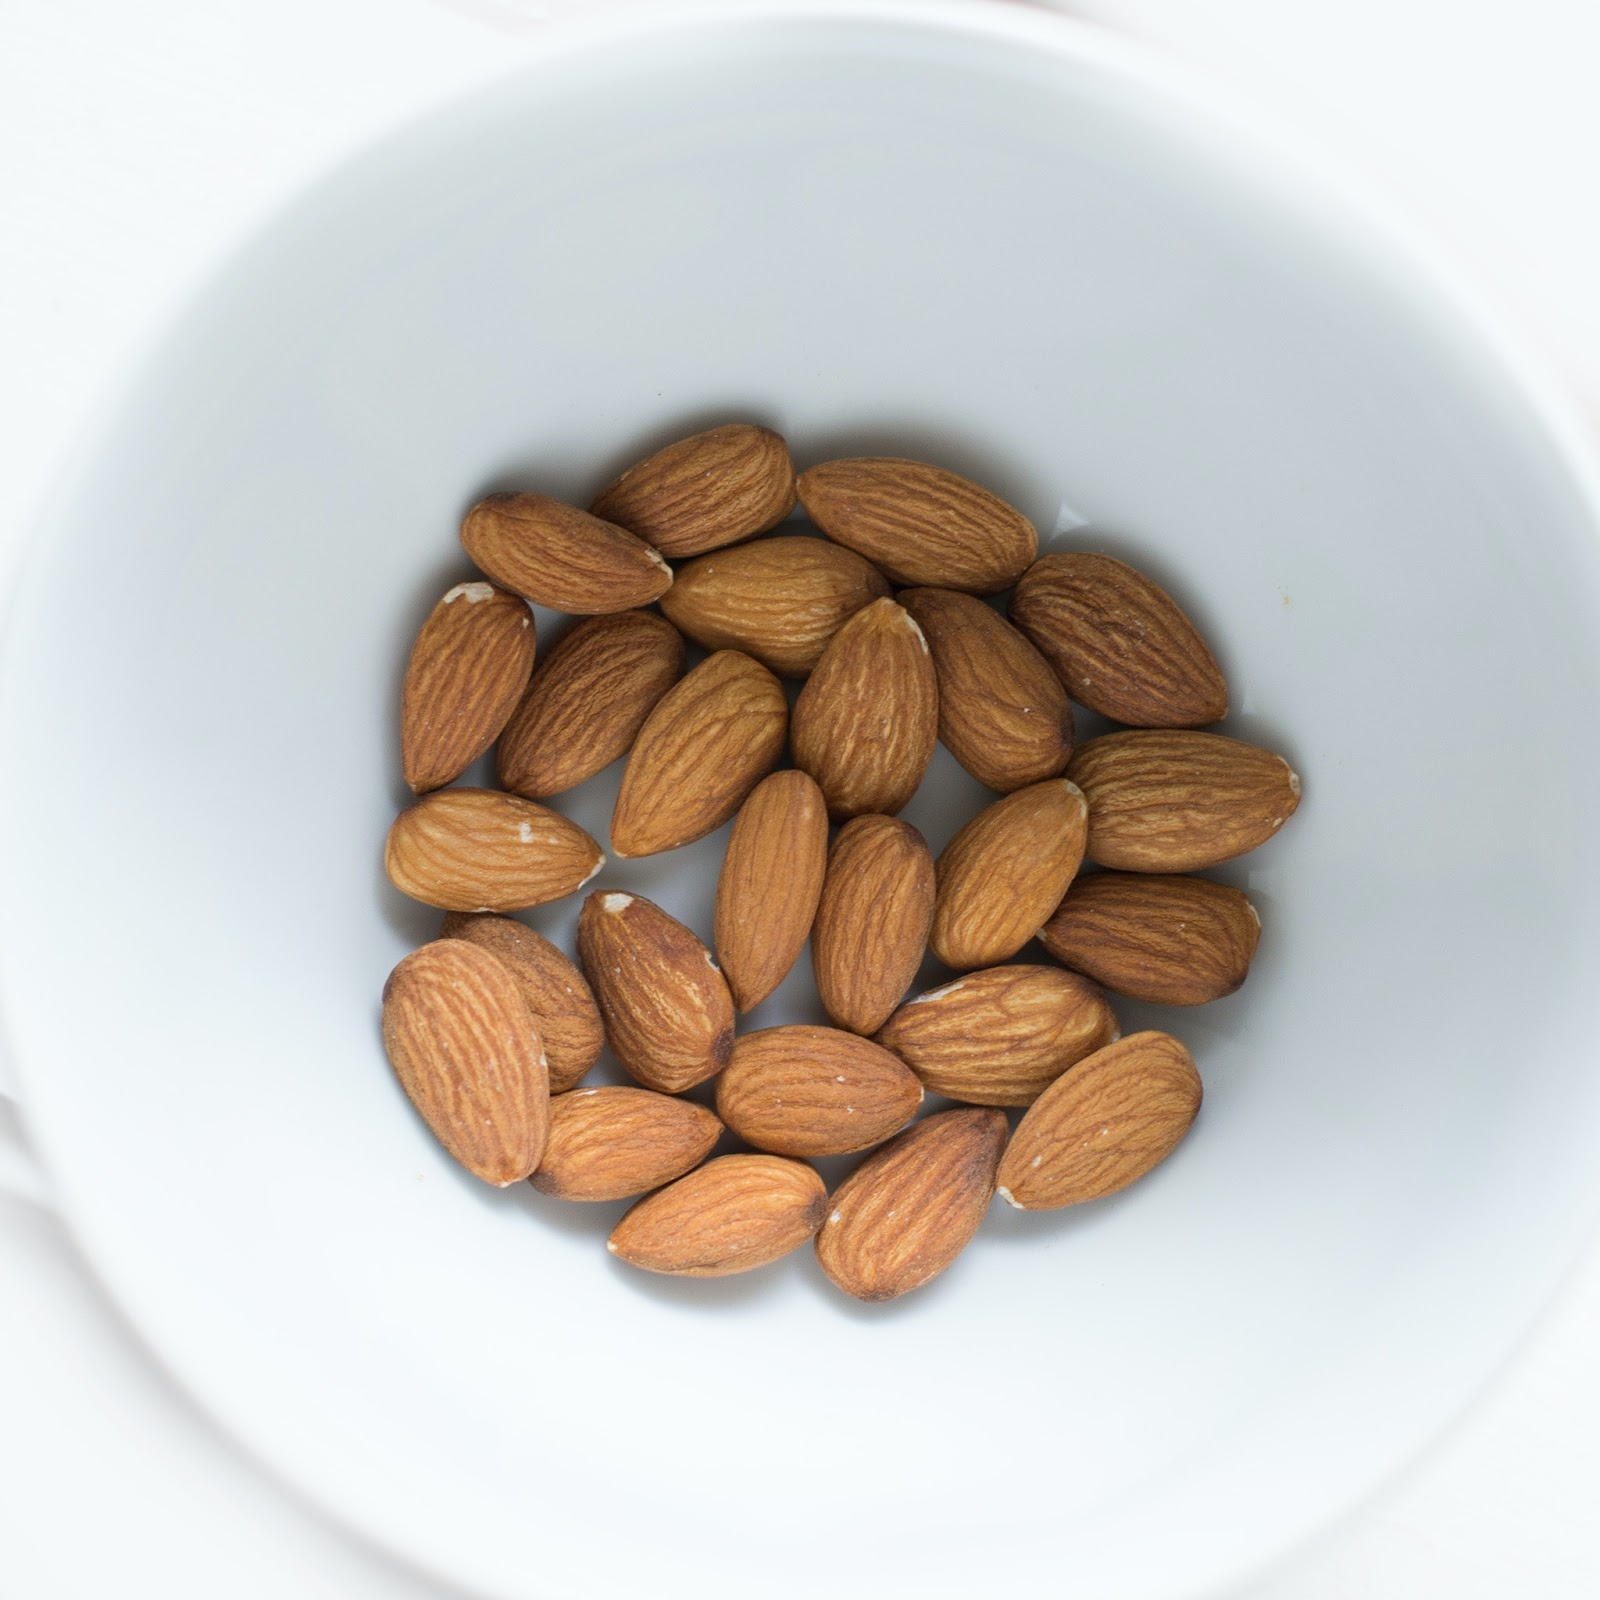 Almonds are good for eyesight